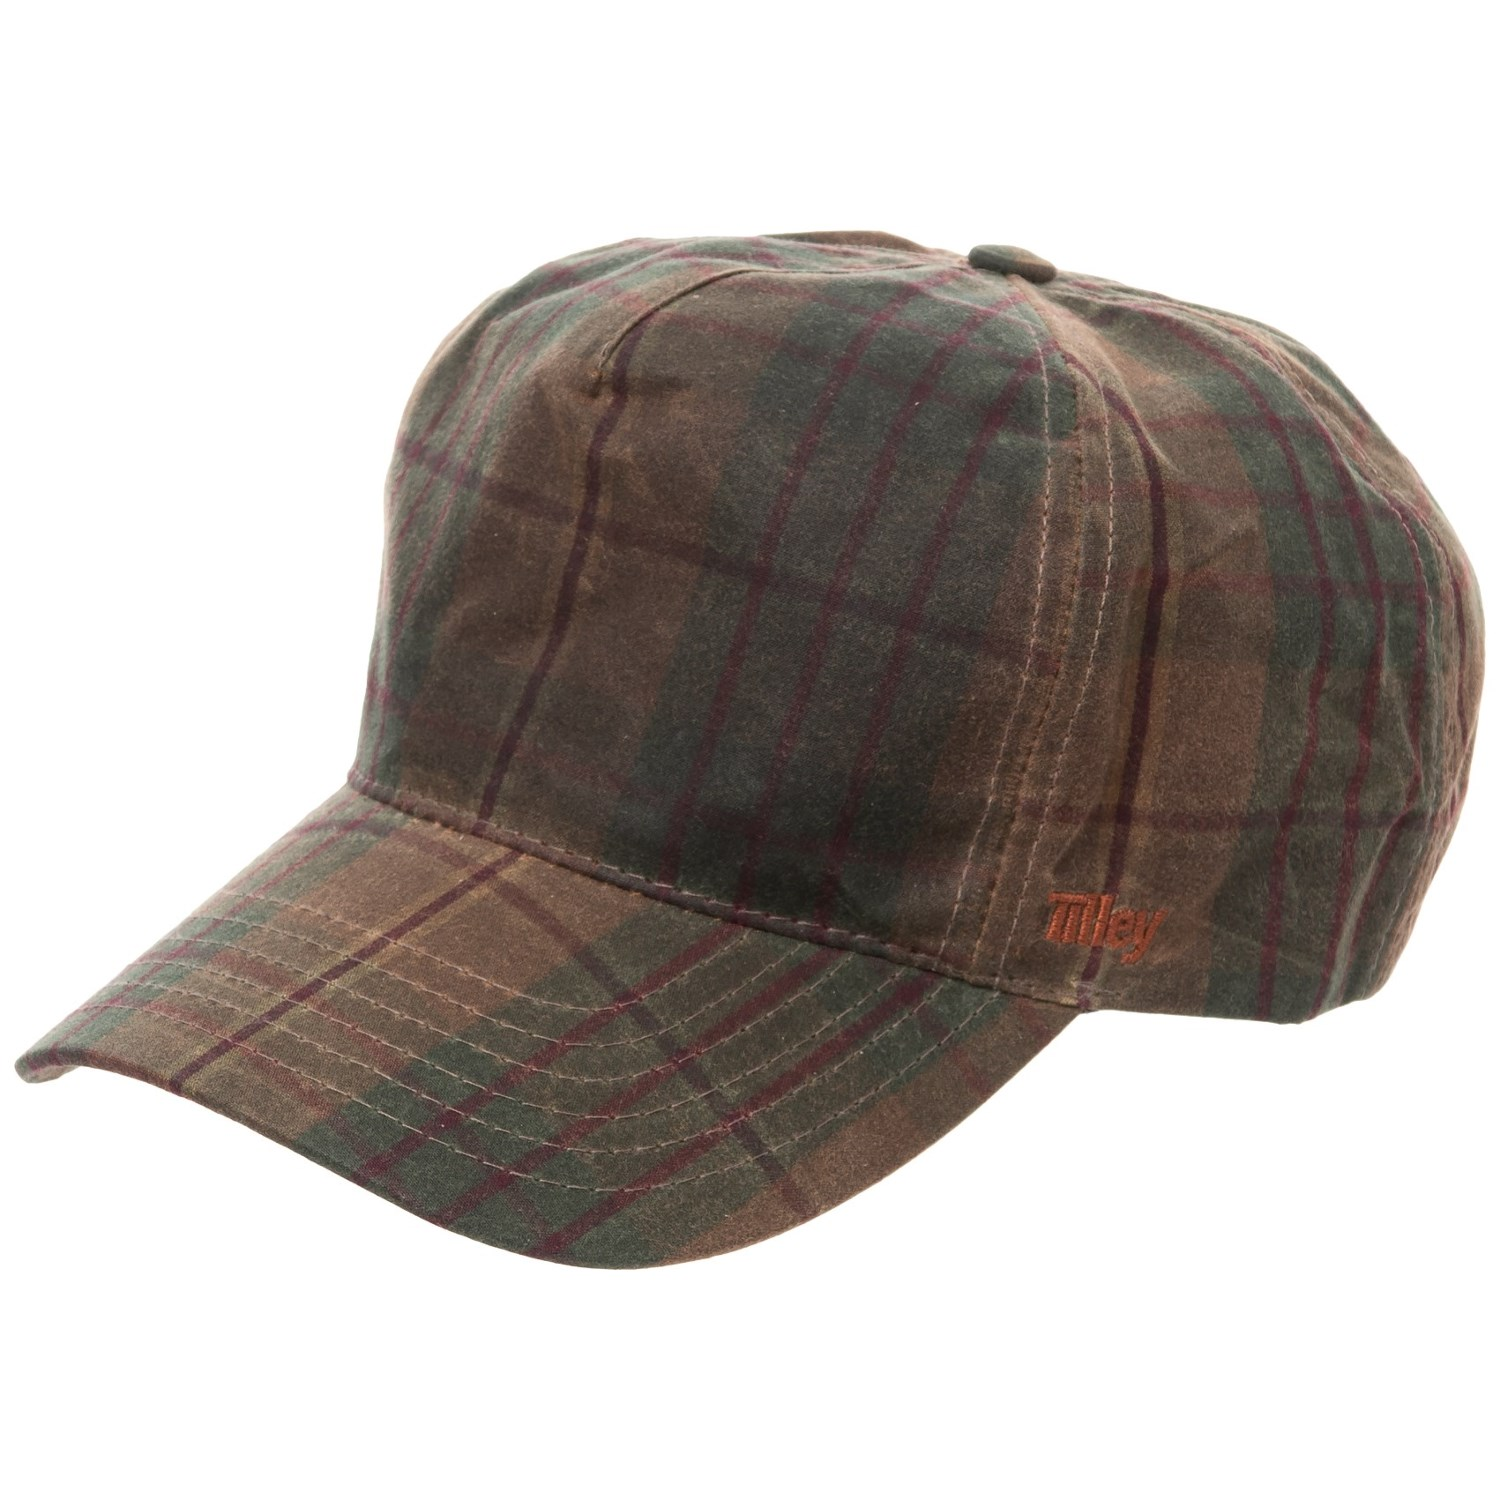 5813351d996 Tilley Waxed-Cotton Baseball Cap (For Men) in Olive ...